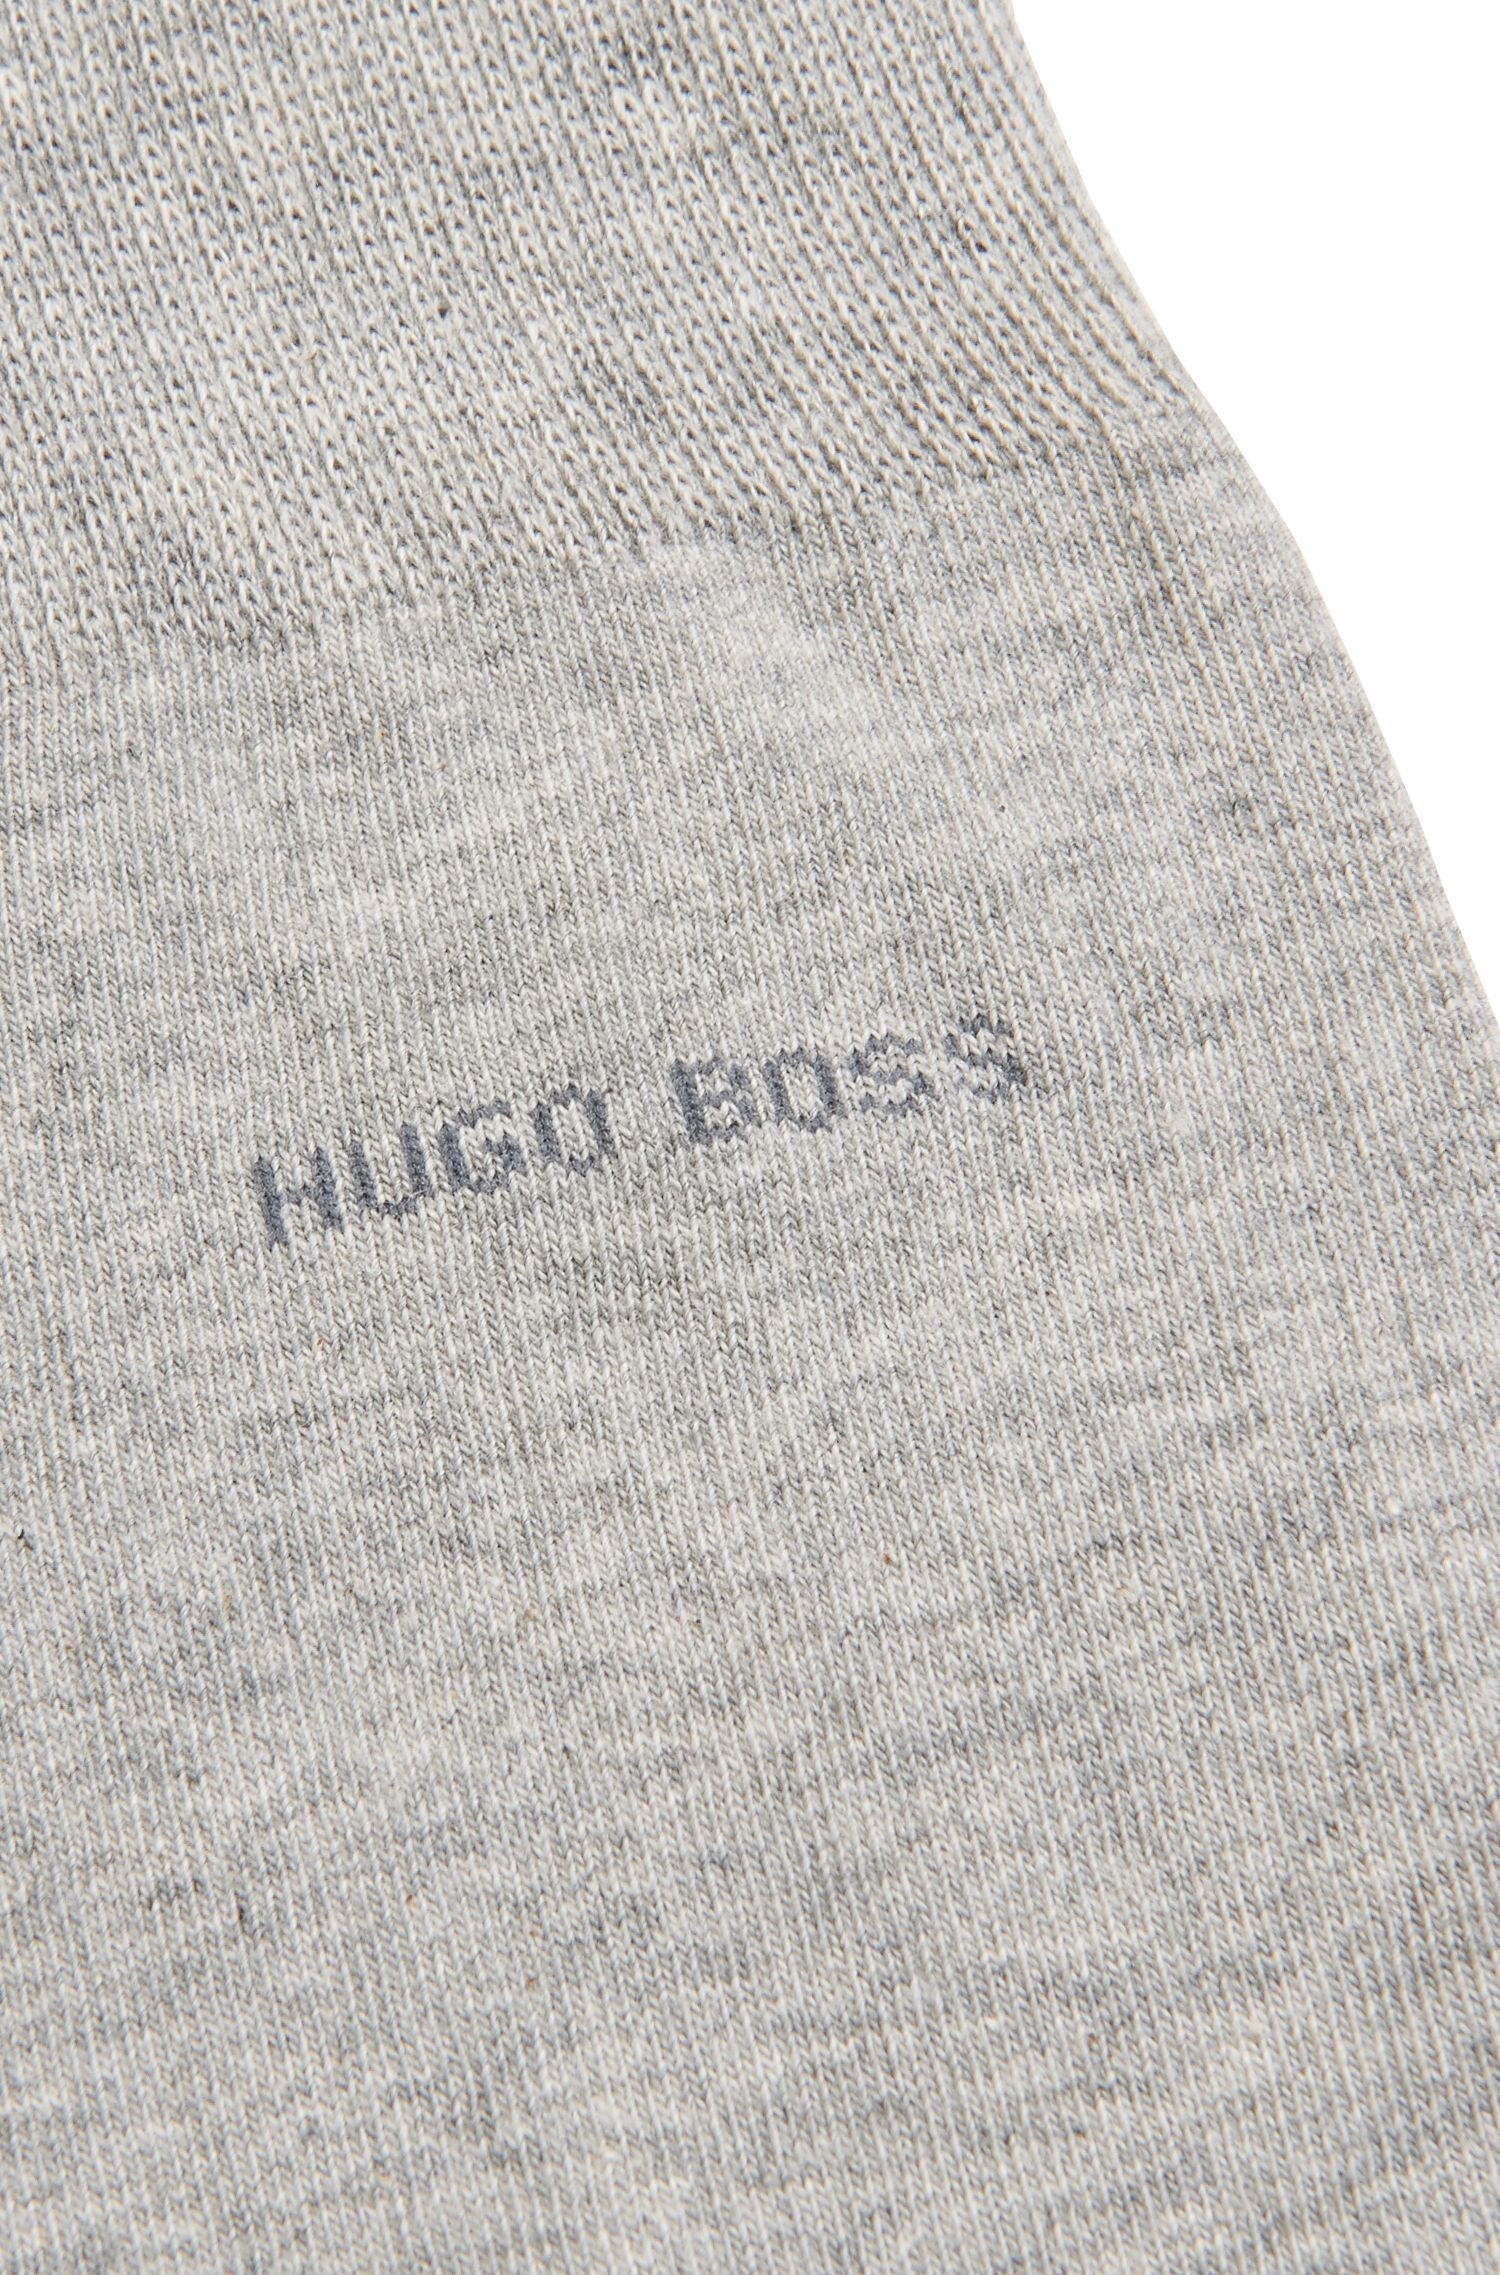 Regular-length socks in combed stretch cotton, Silver